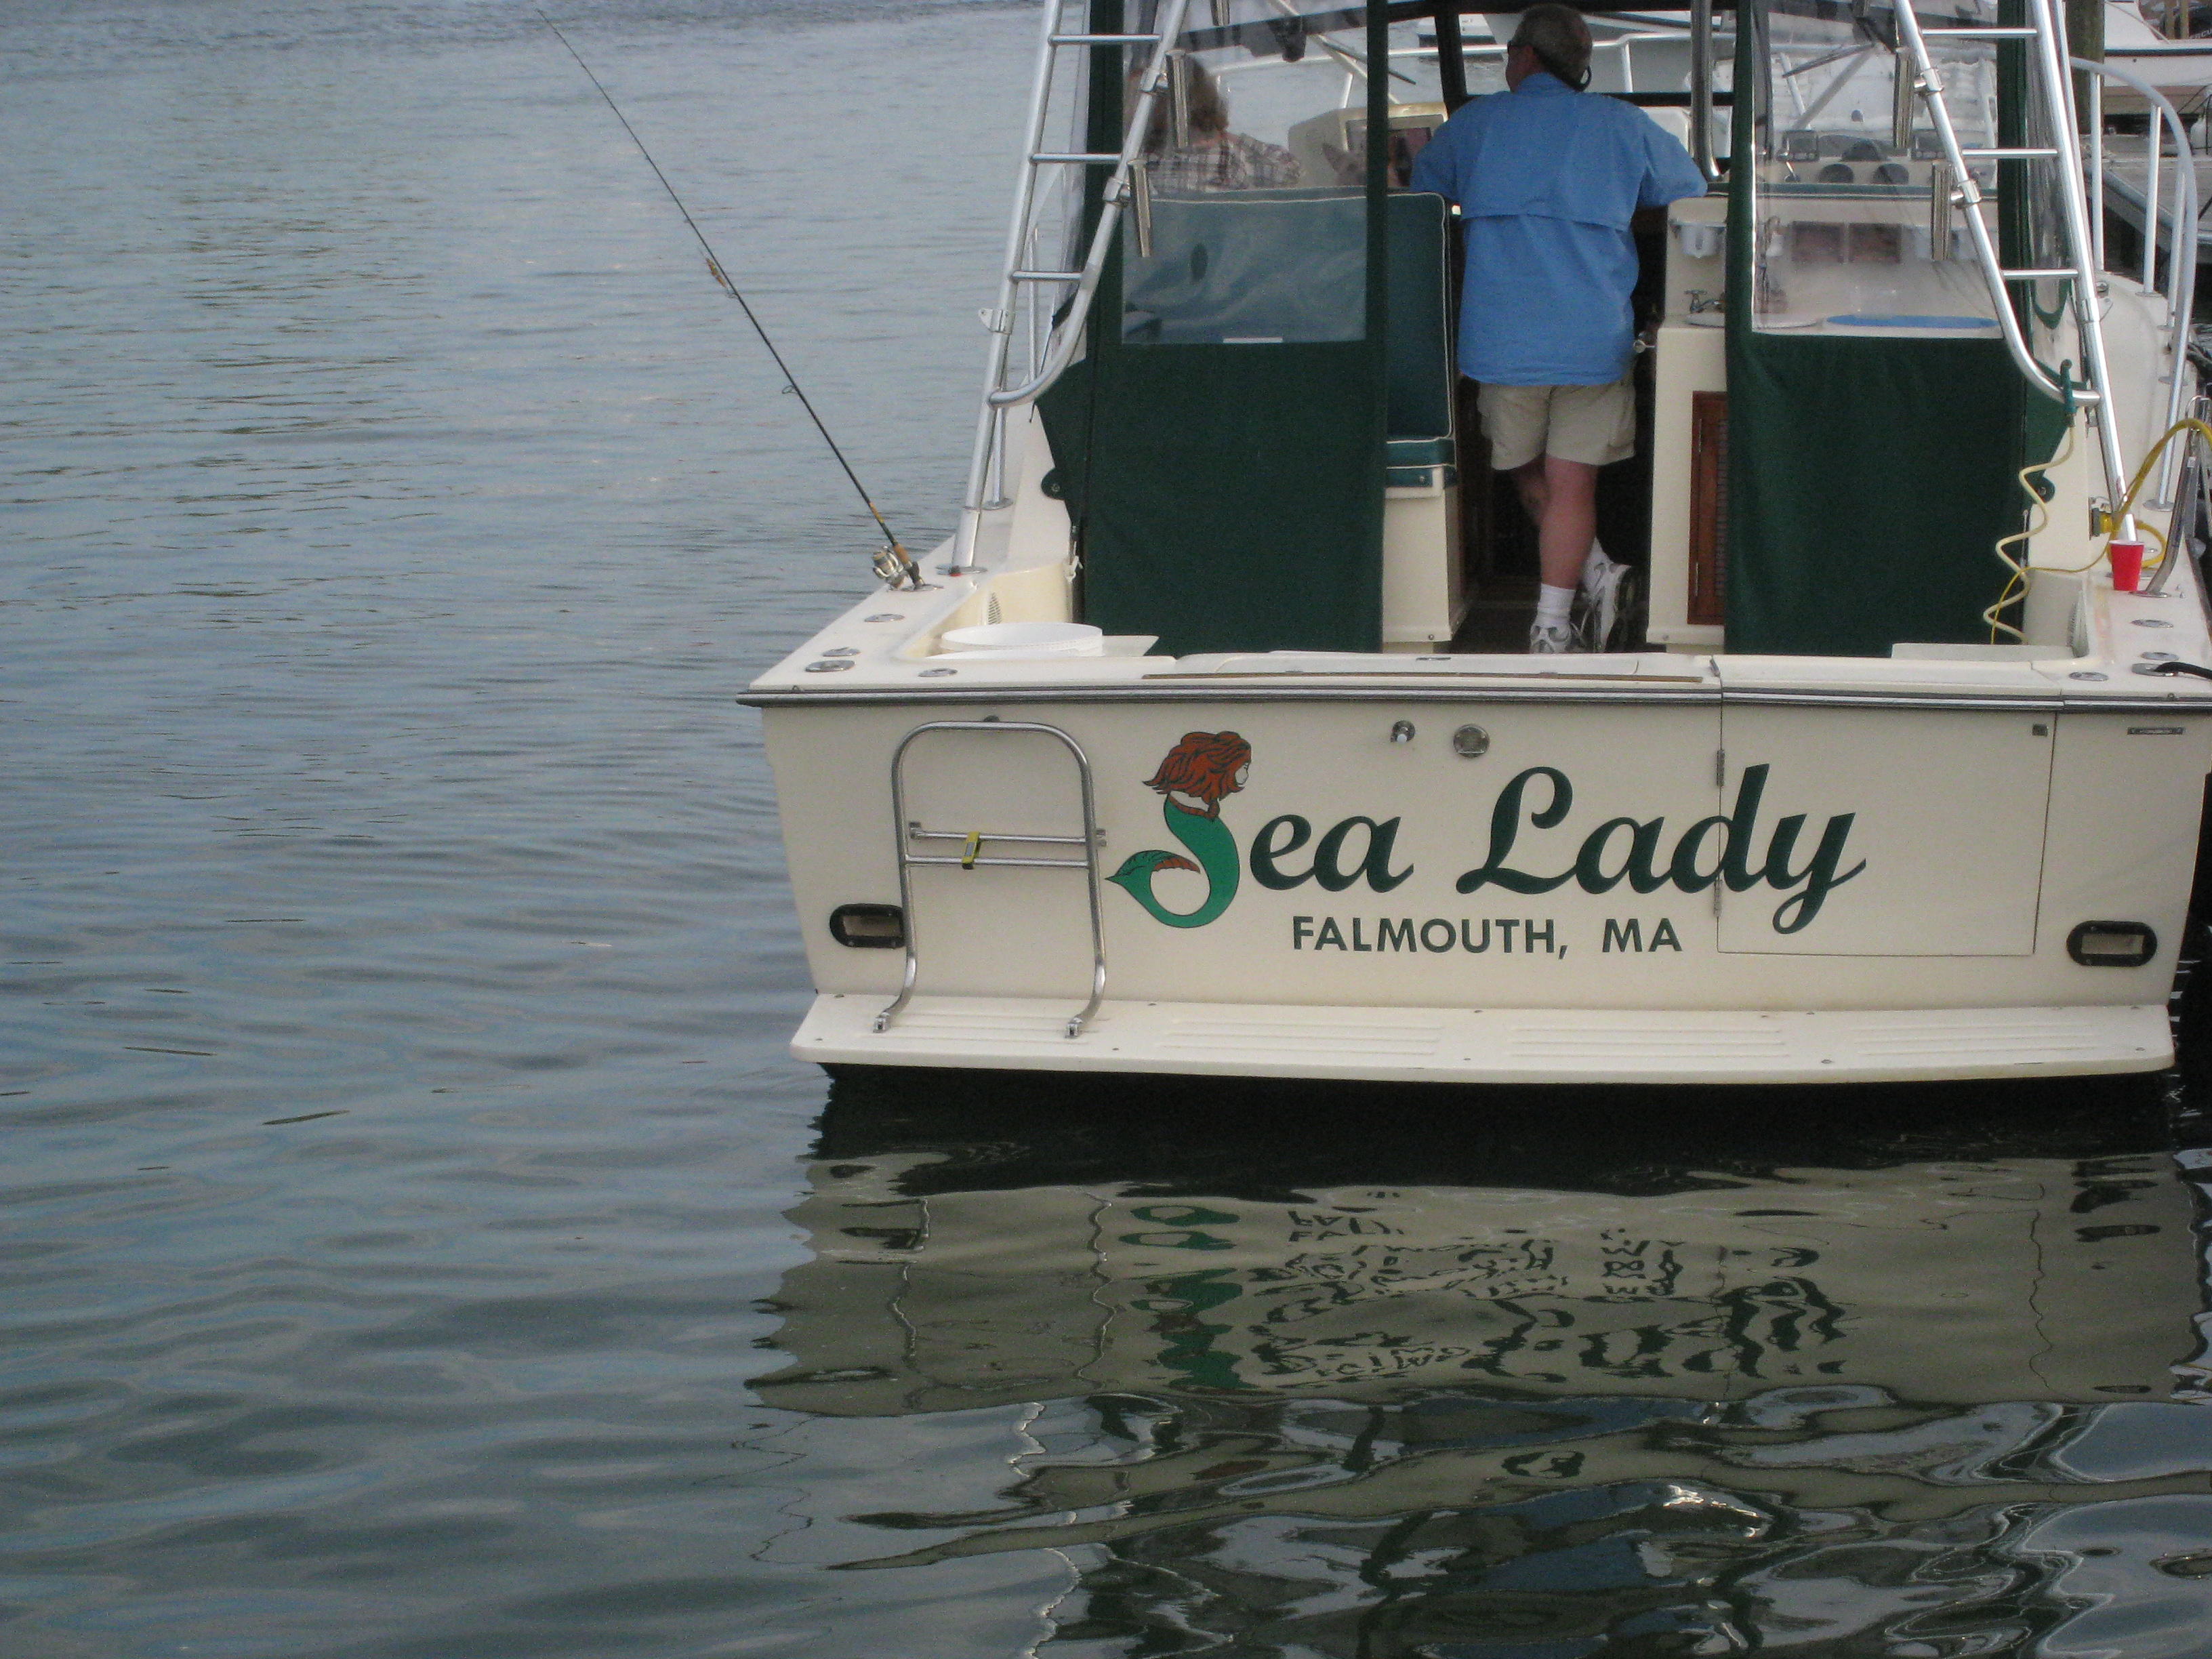 Transom of Sea Lady Boat